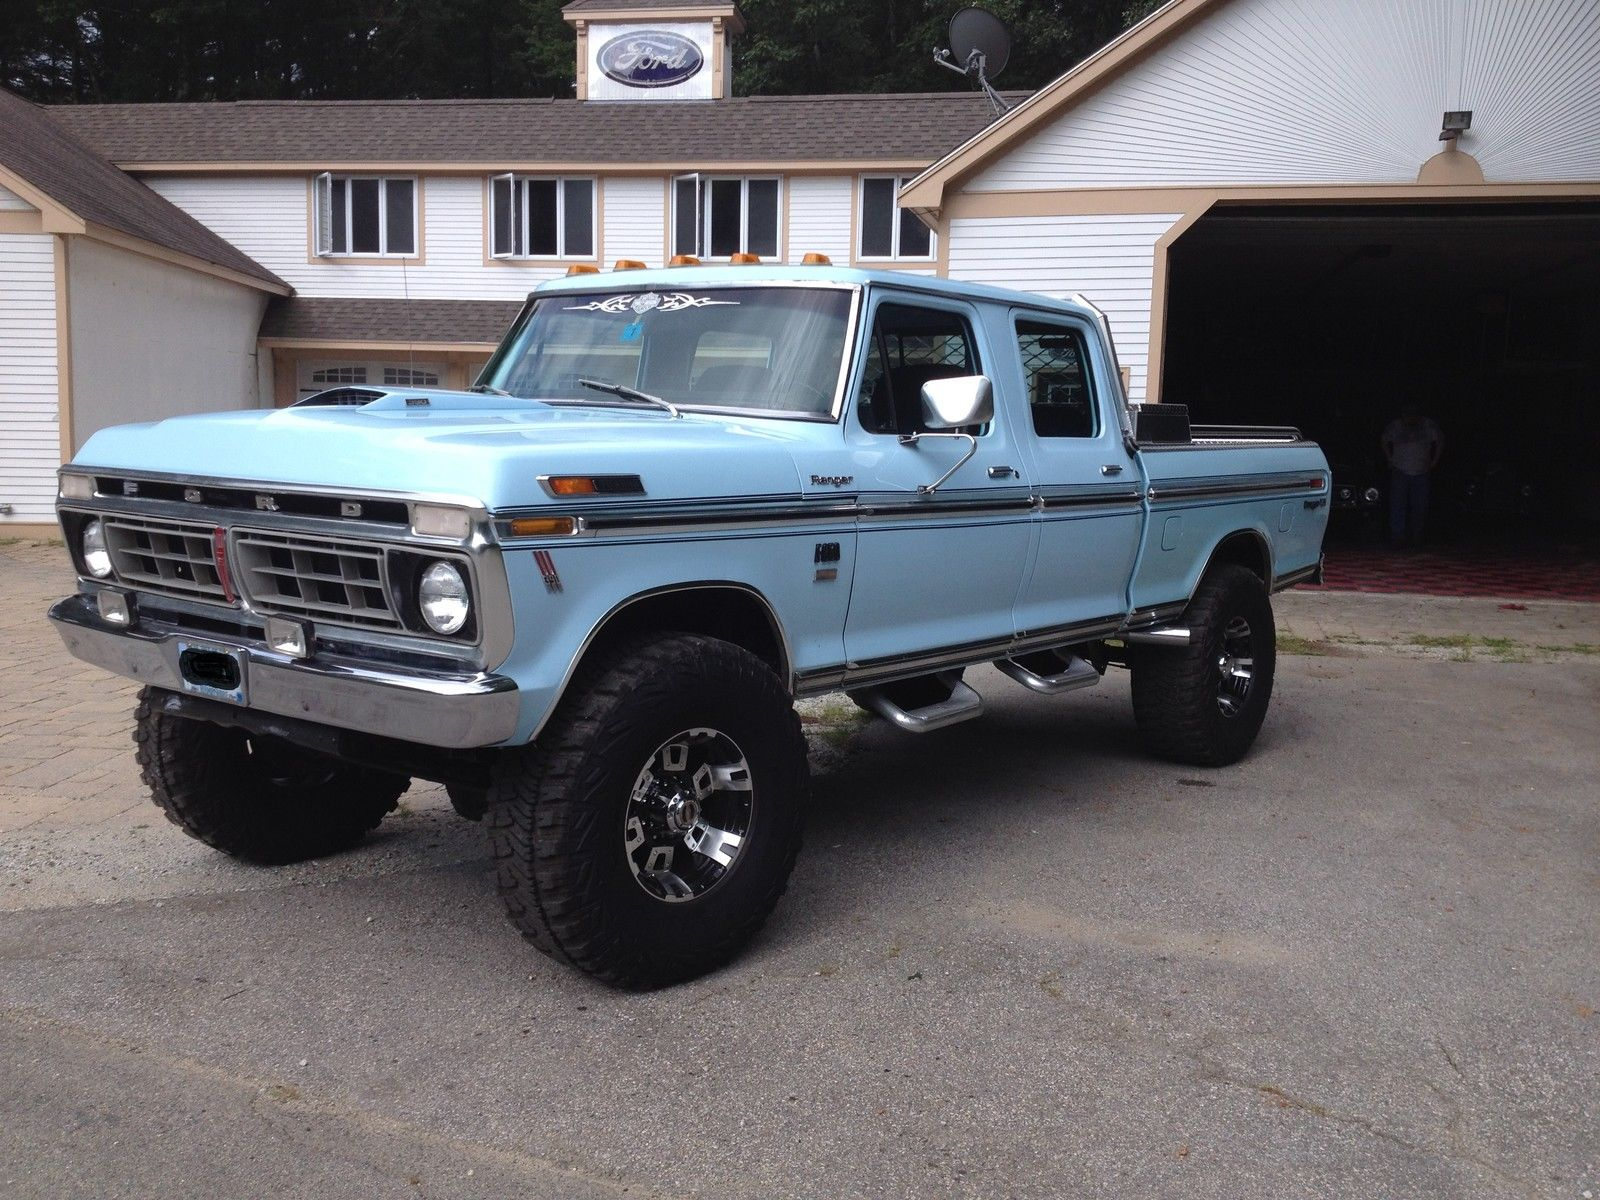 1976 ford f 250 crewcab for sale photos technical specifications description. Black Bedroom Furniture Sets. Home Design Ideas